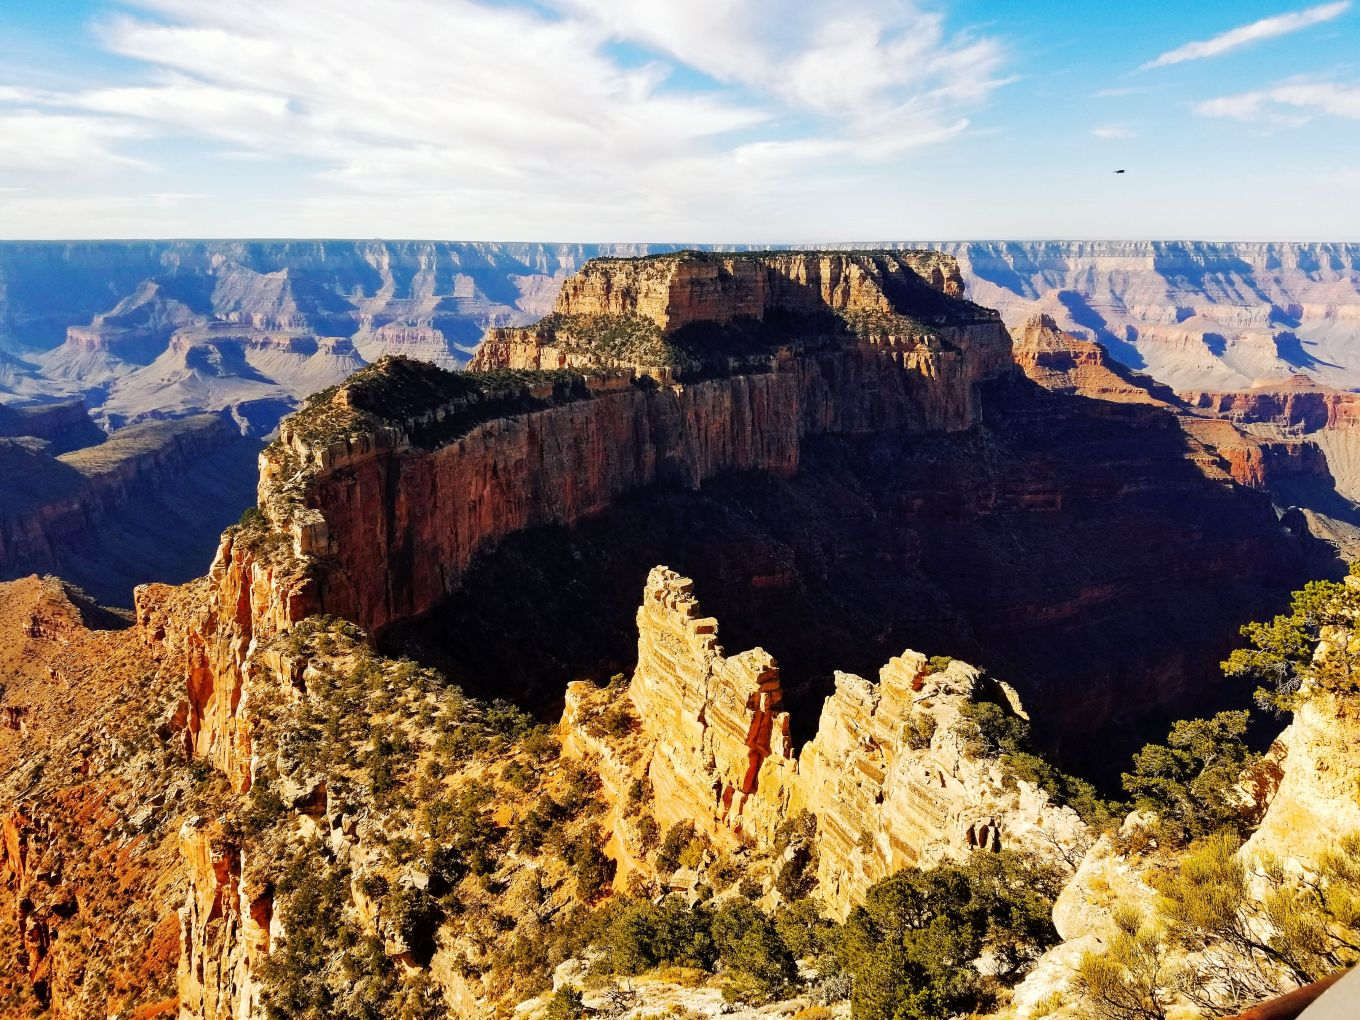 Wotan's Throne, Grand Canyon National Park - North Rim